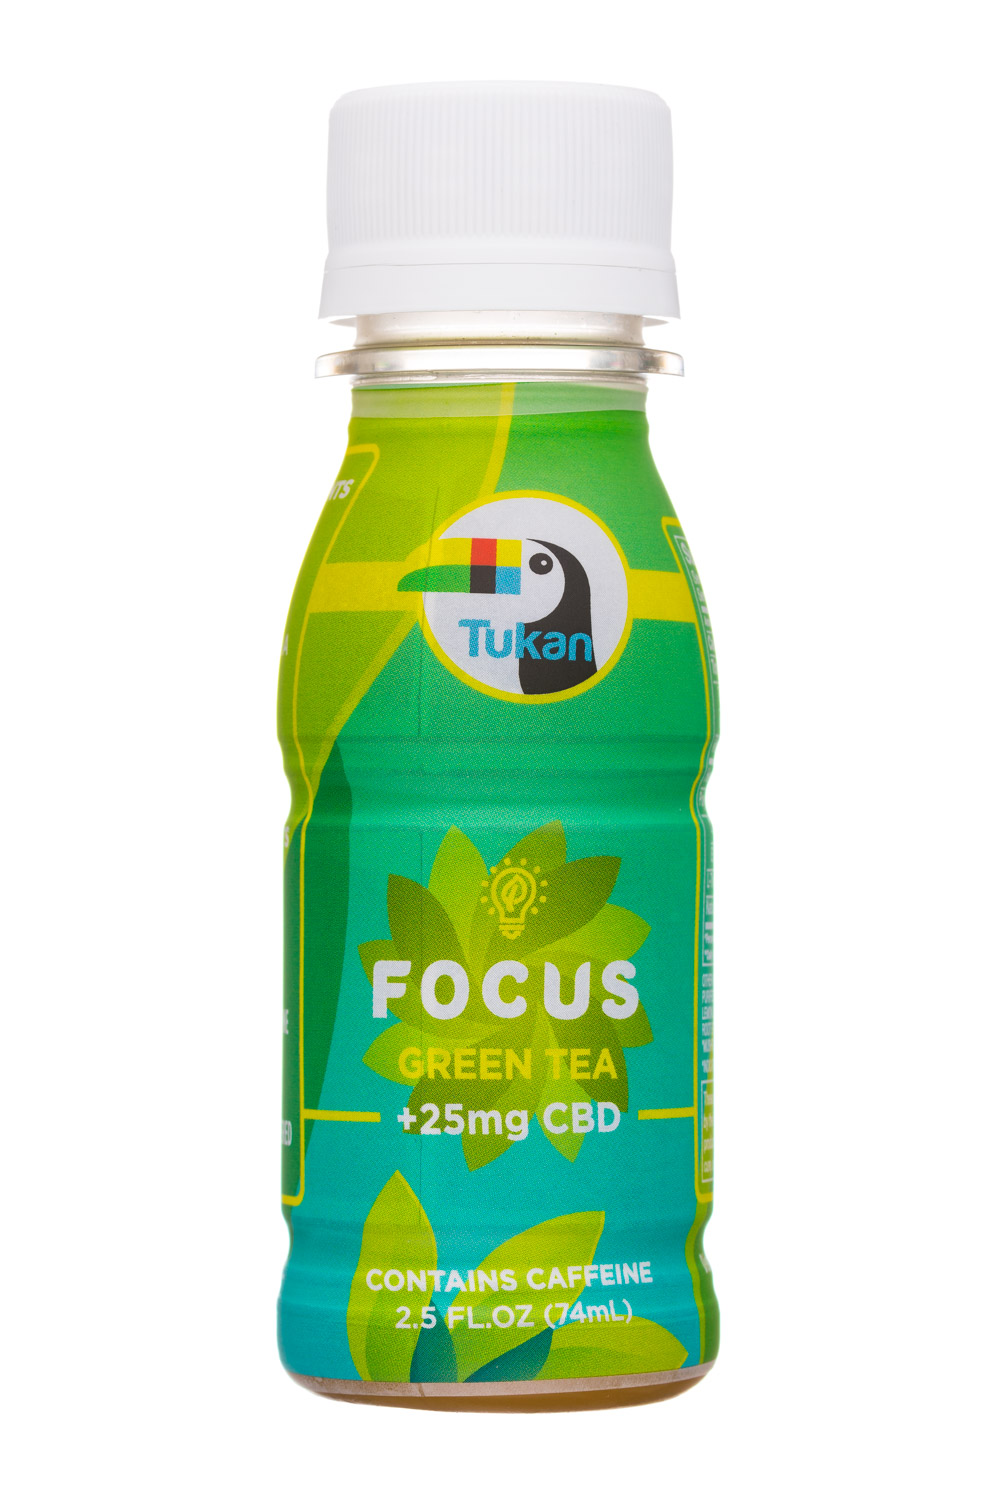 Focus - Green Tea 25mg CBD